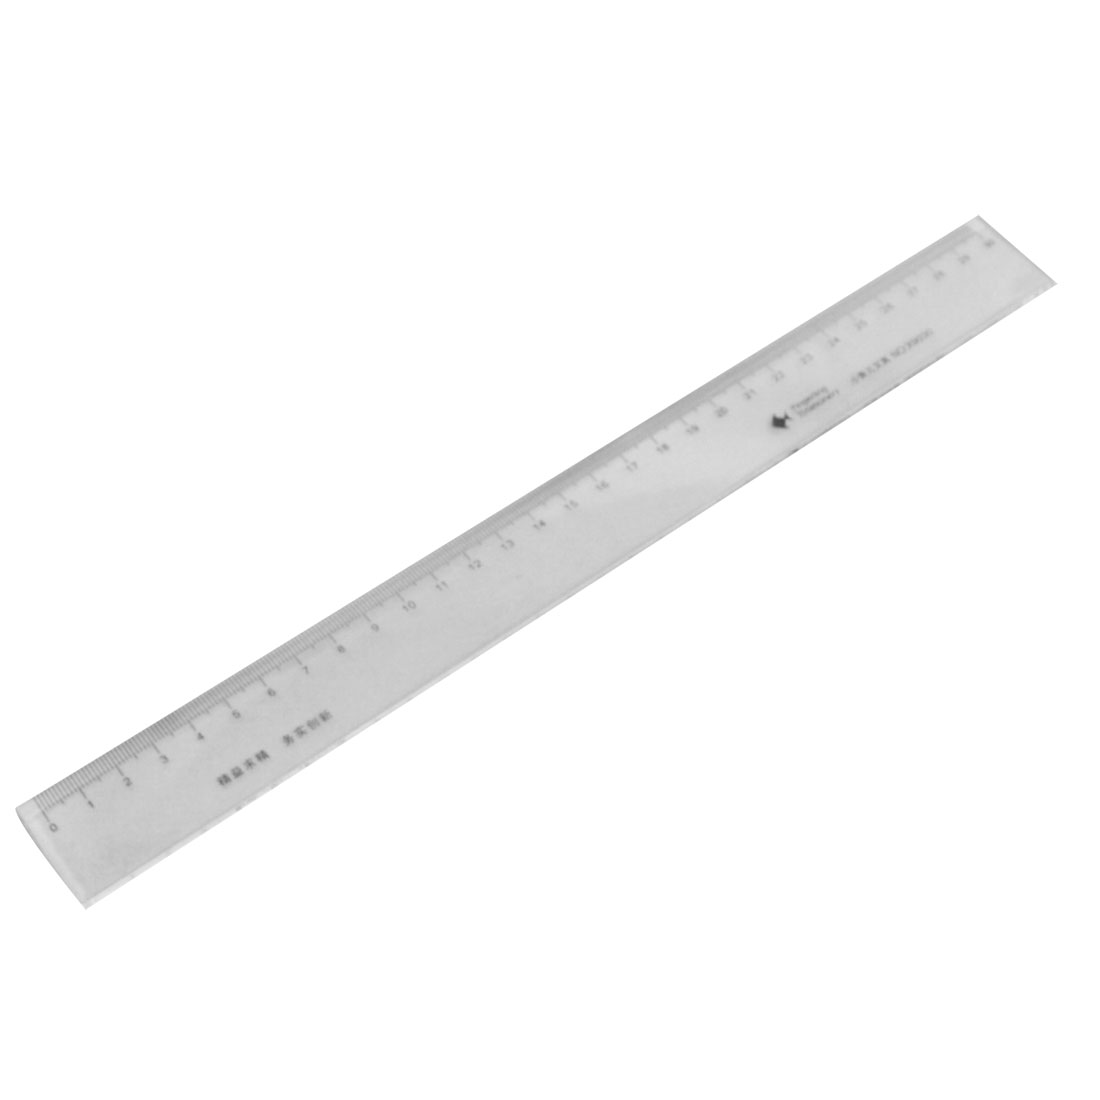 Unique Bargains 30cm 118 Inch Length Measure Clear